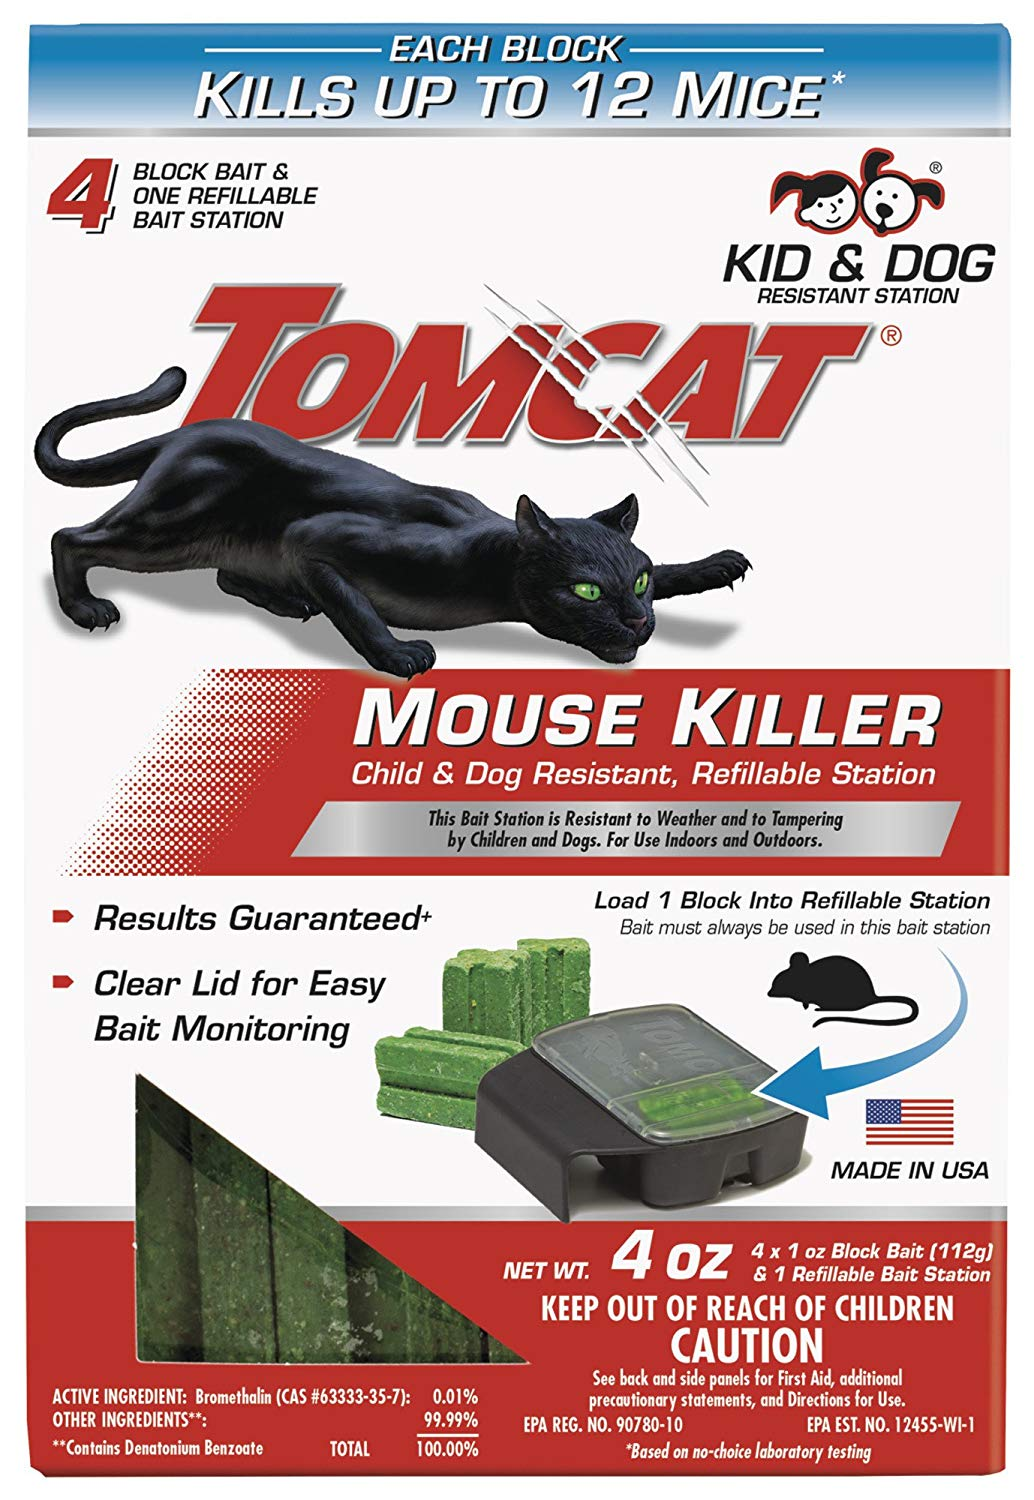 Tomcat 371710 Mouse Killer Refillable Station for Indoor/Outdoor Use - Child & Dog Resistant (1 Case of 12 Stations, with 4 Baits Each)